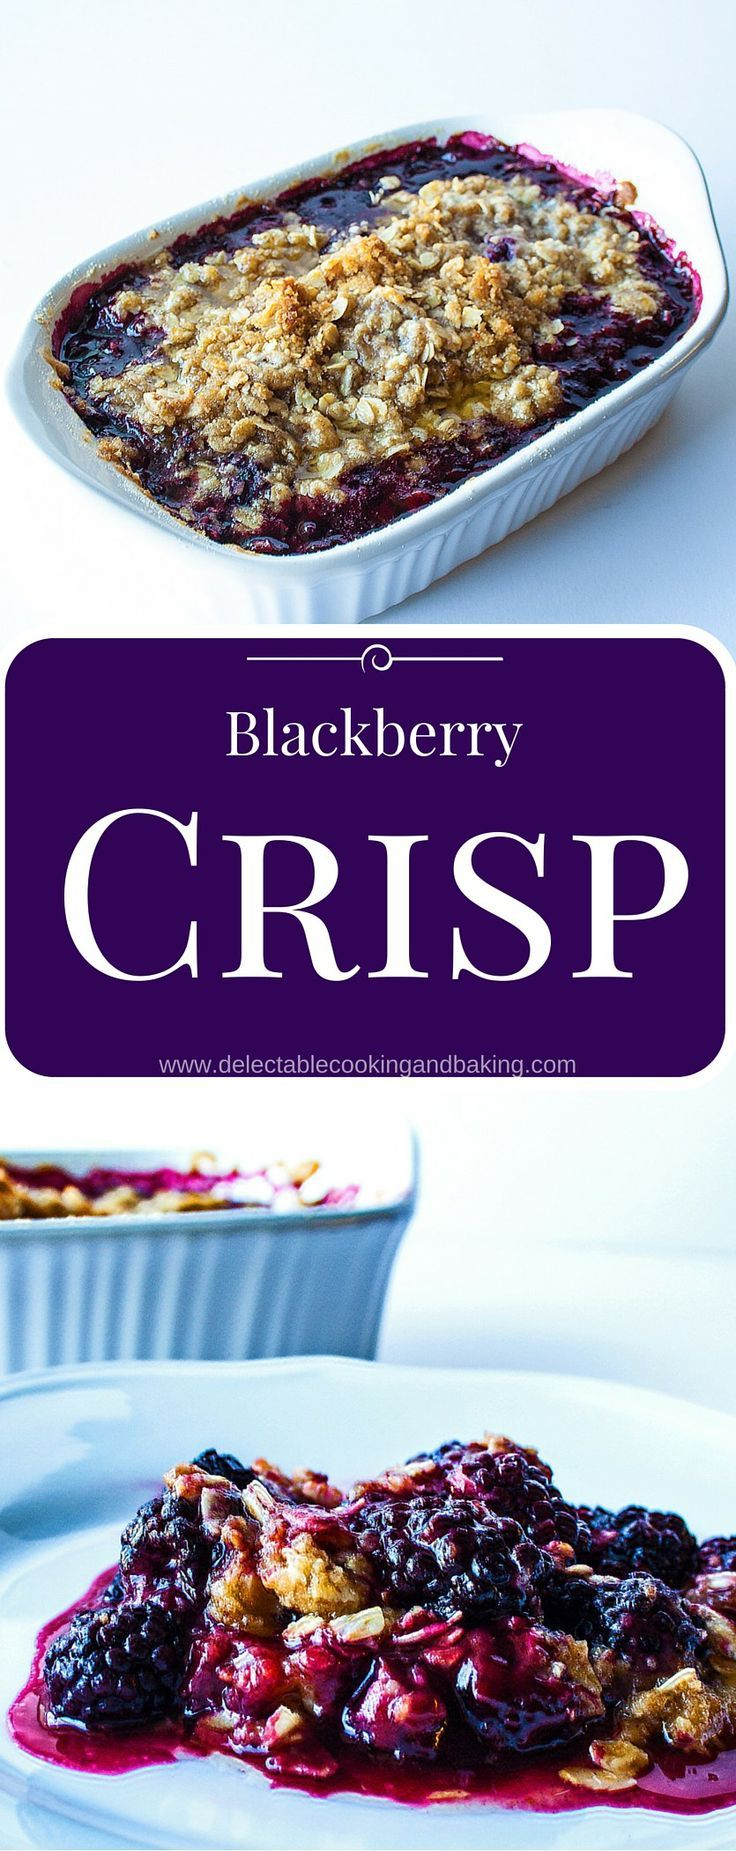 This classic blackberry crisp recipe brings to mind memories of picking blackberries in the summertime... | Delectable Cooking and Baking